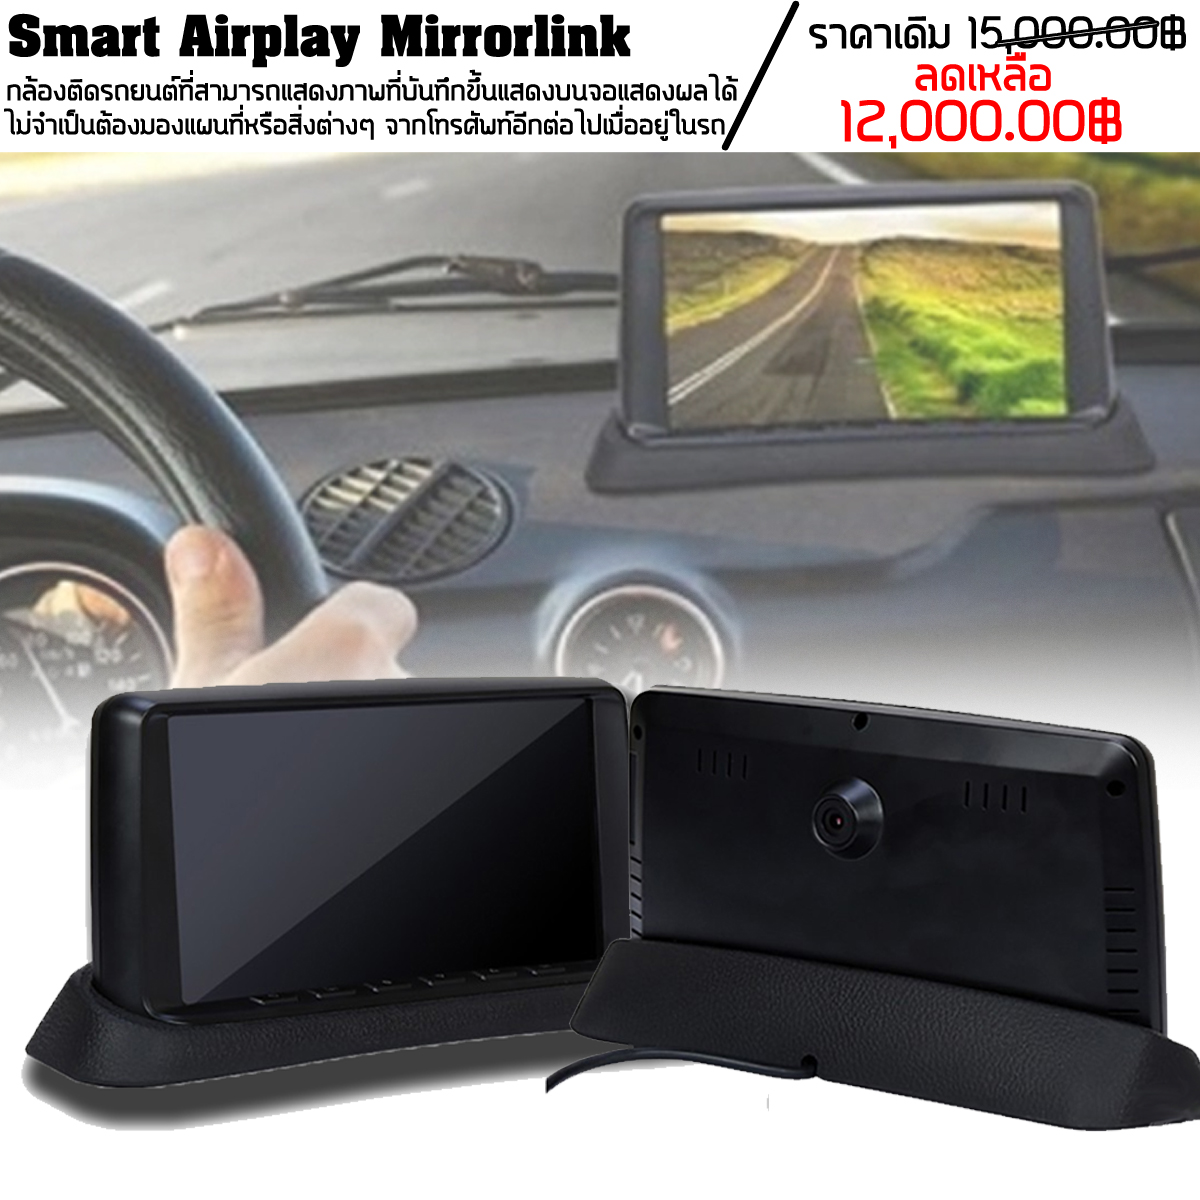 Smart Airplay mirrorlink